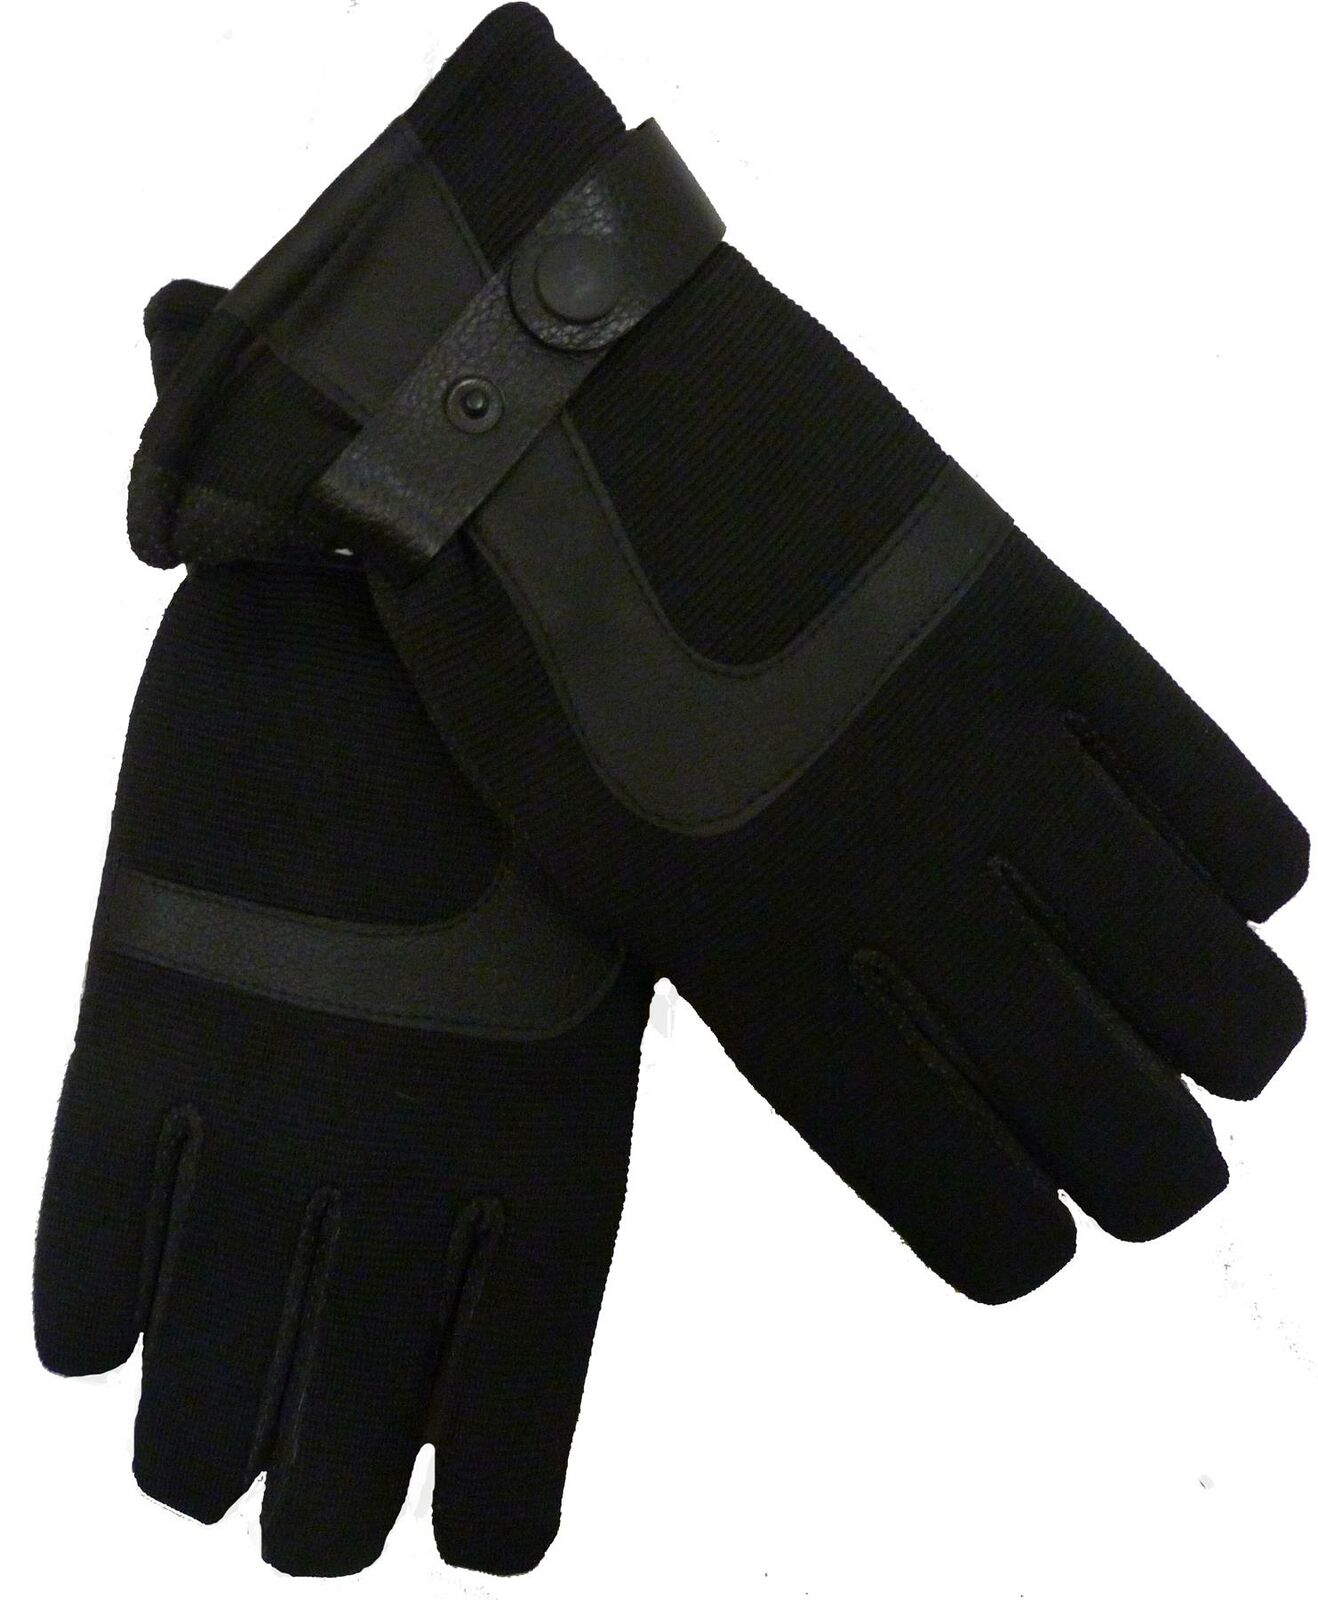 Mens All Action Gloves With Gripper Palm By Handy Glove Co - Two Sizes